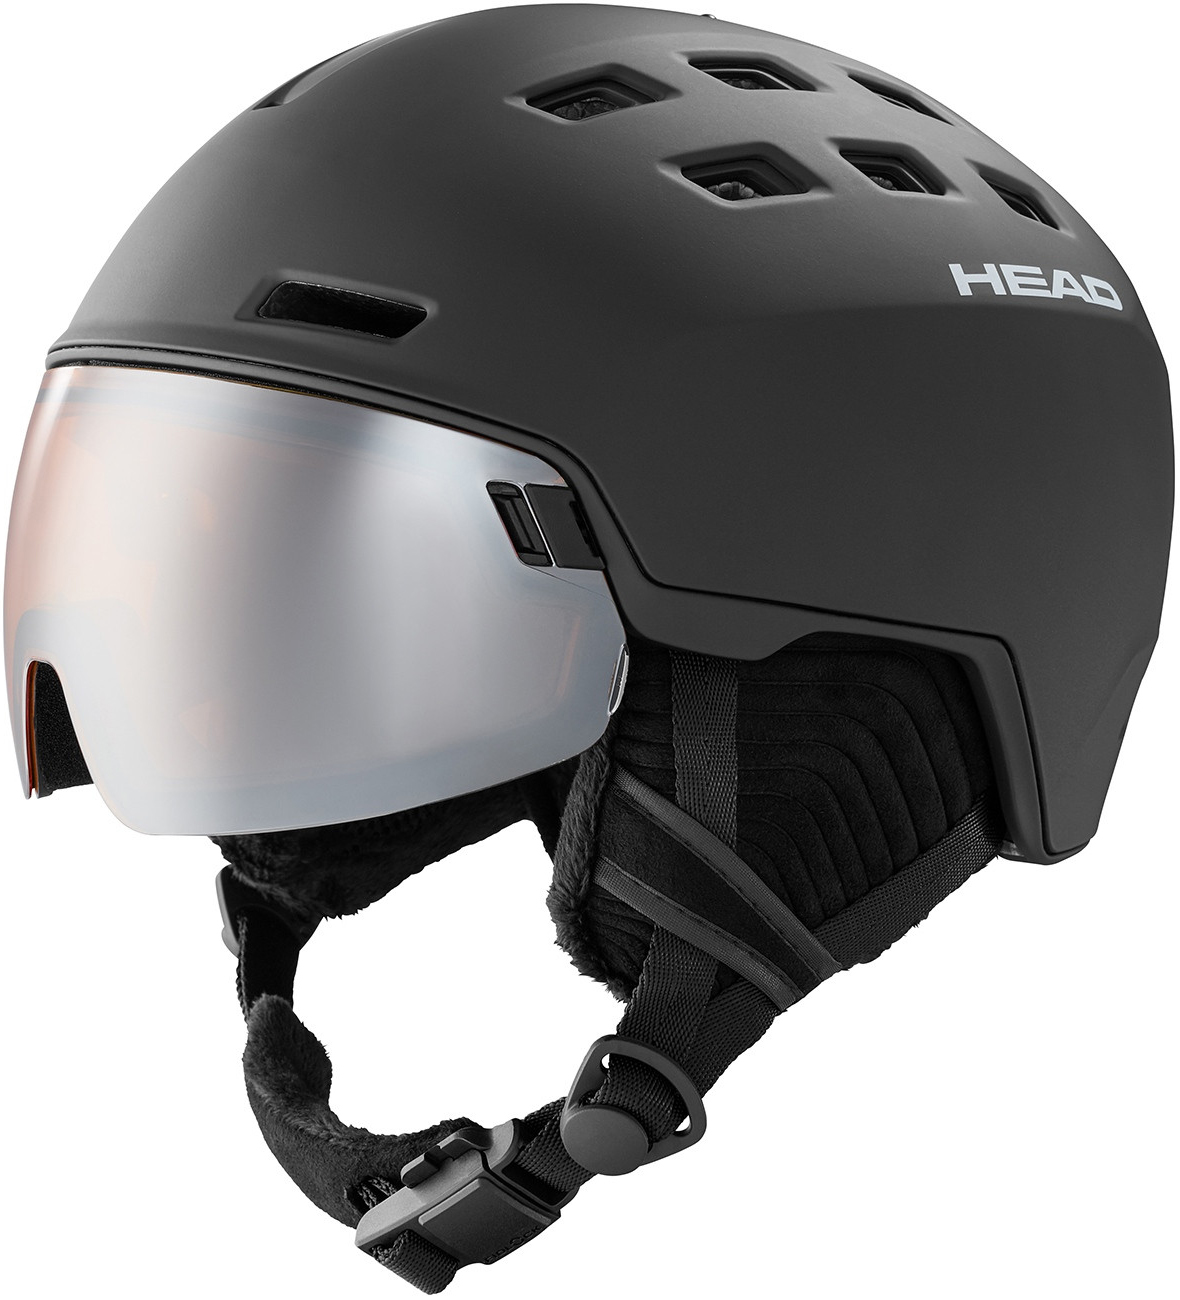 Head Radar vizierhelm black